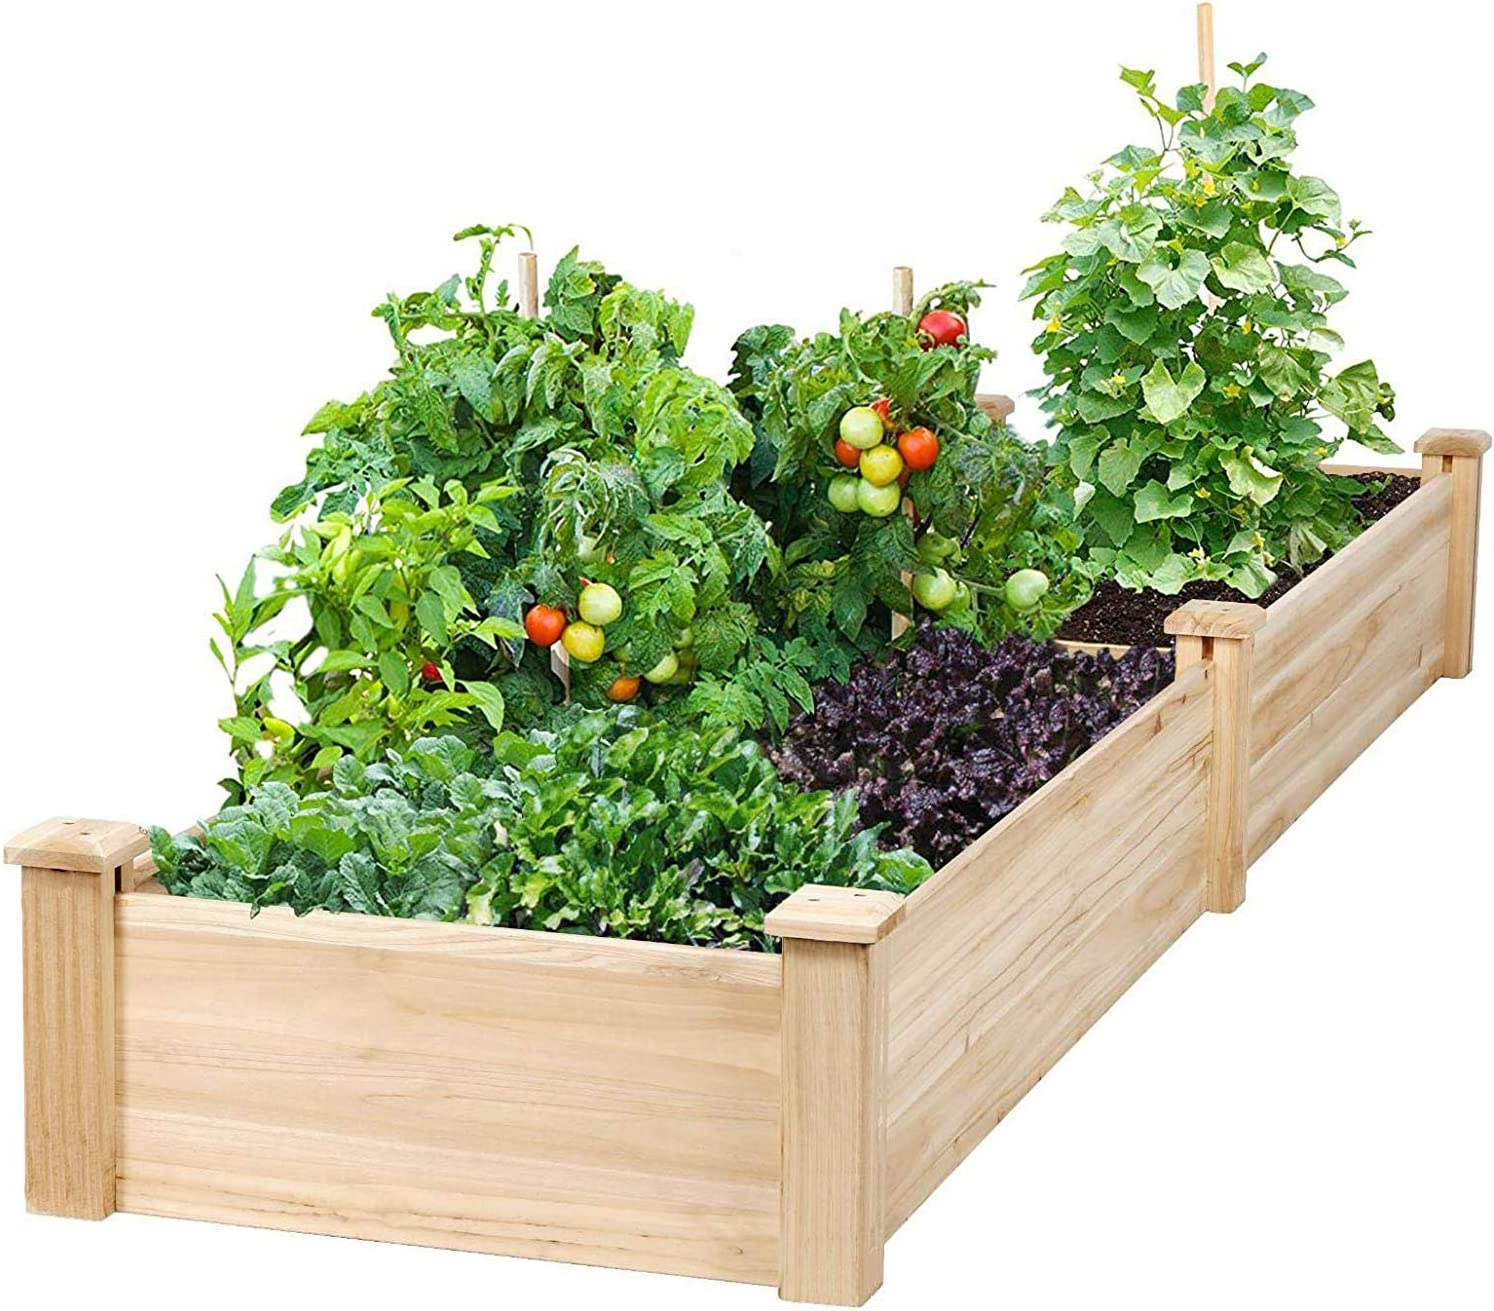 Incbruce 8ft Wooden Raised Garden Bed Planter, No-Bolt Assembly Elevated Flower Bed Boxes Kit for Vegetable Flower Herb Gardening, Natural